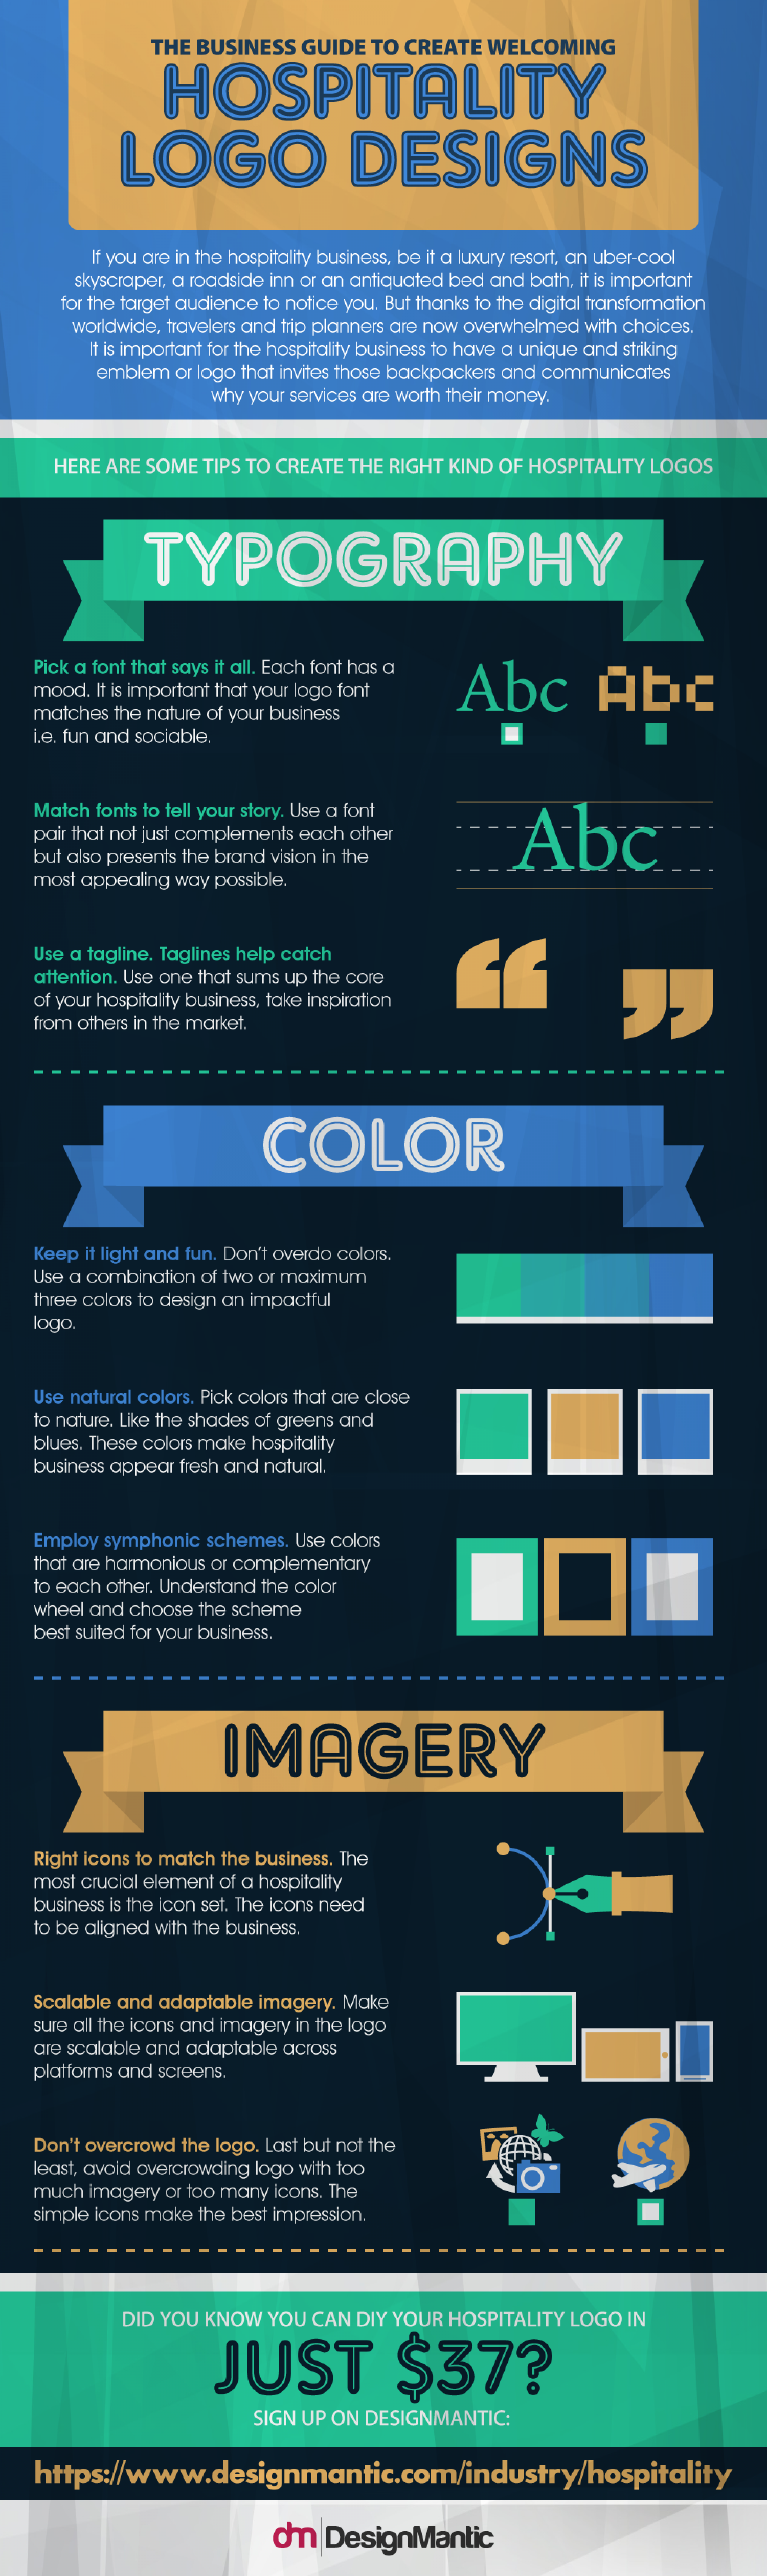 The Business Guide To Create Welcoming Hospitality Logo Designs Infographic